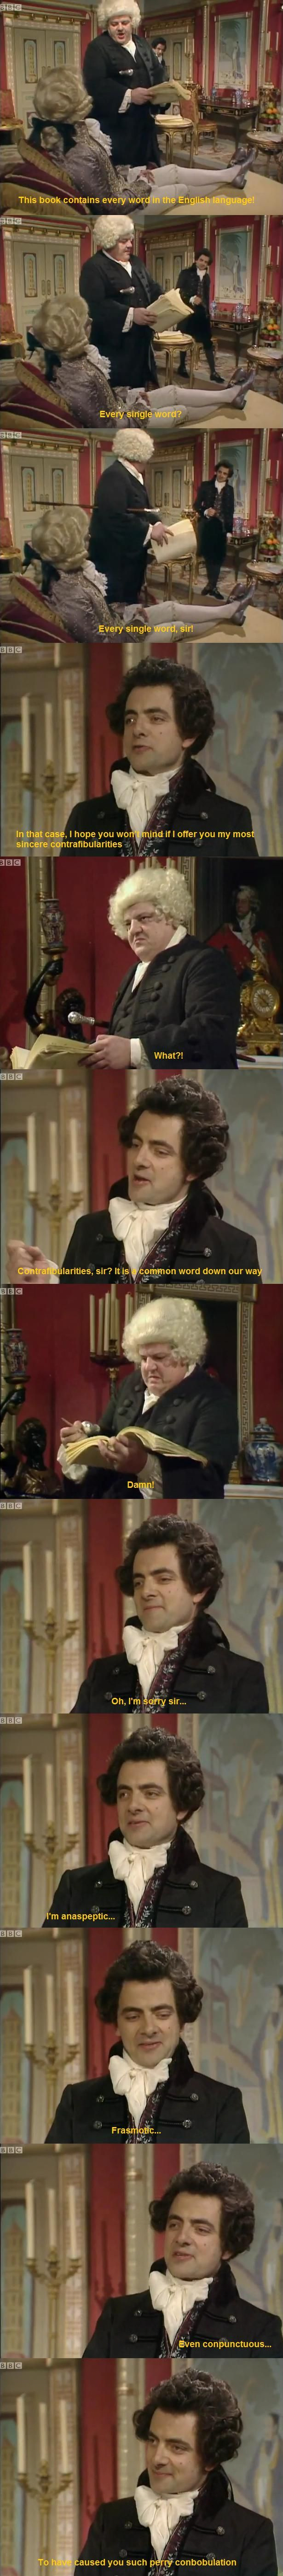 Just Blackadder, trolling before it was cool.